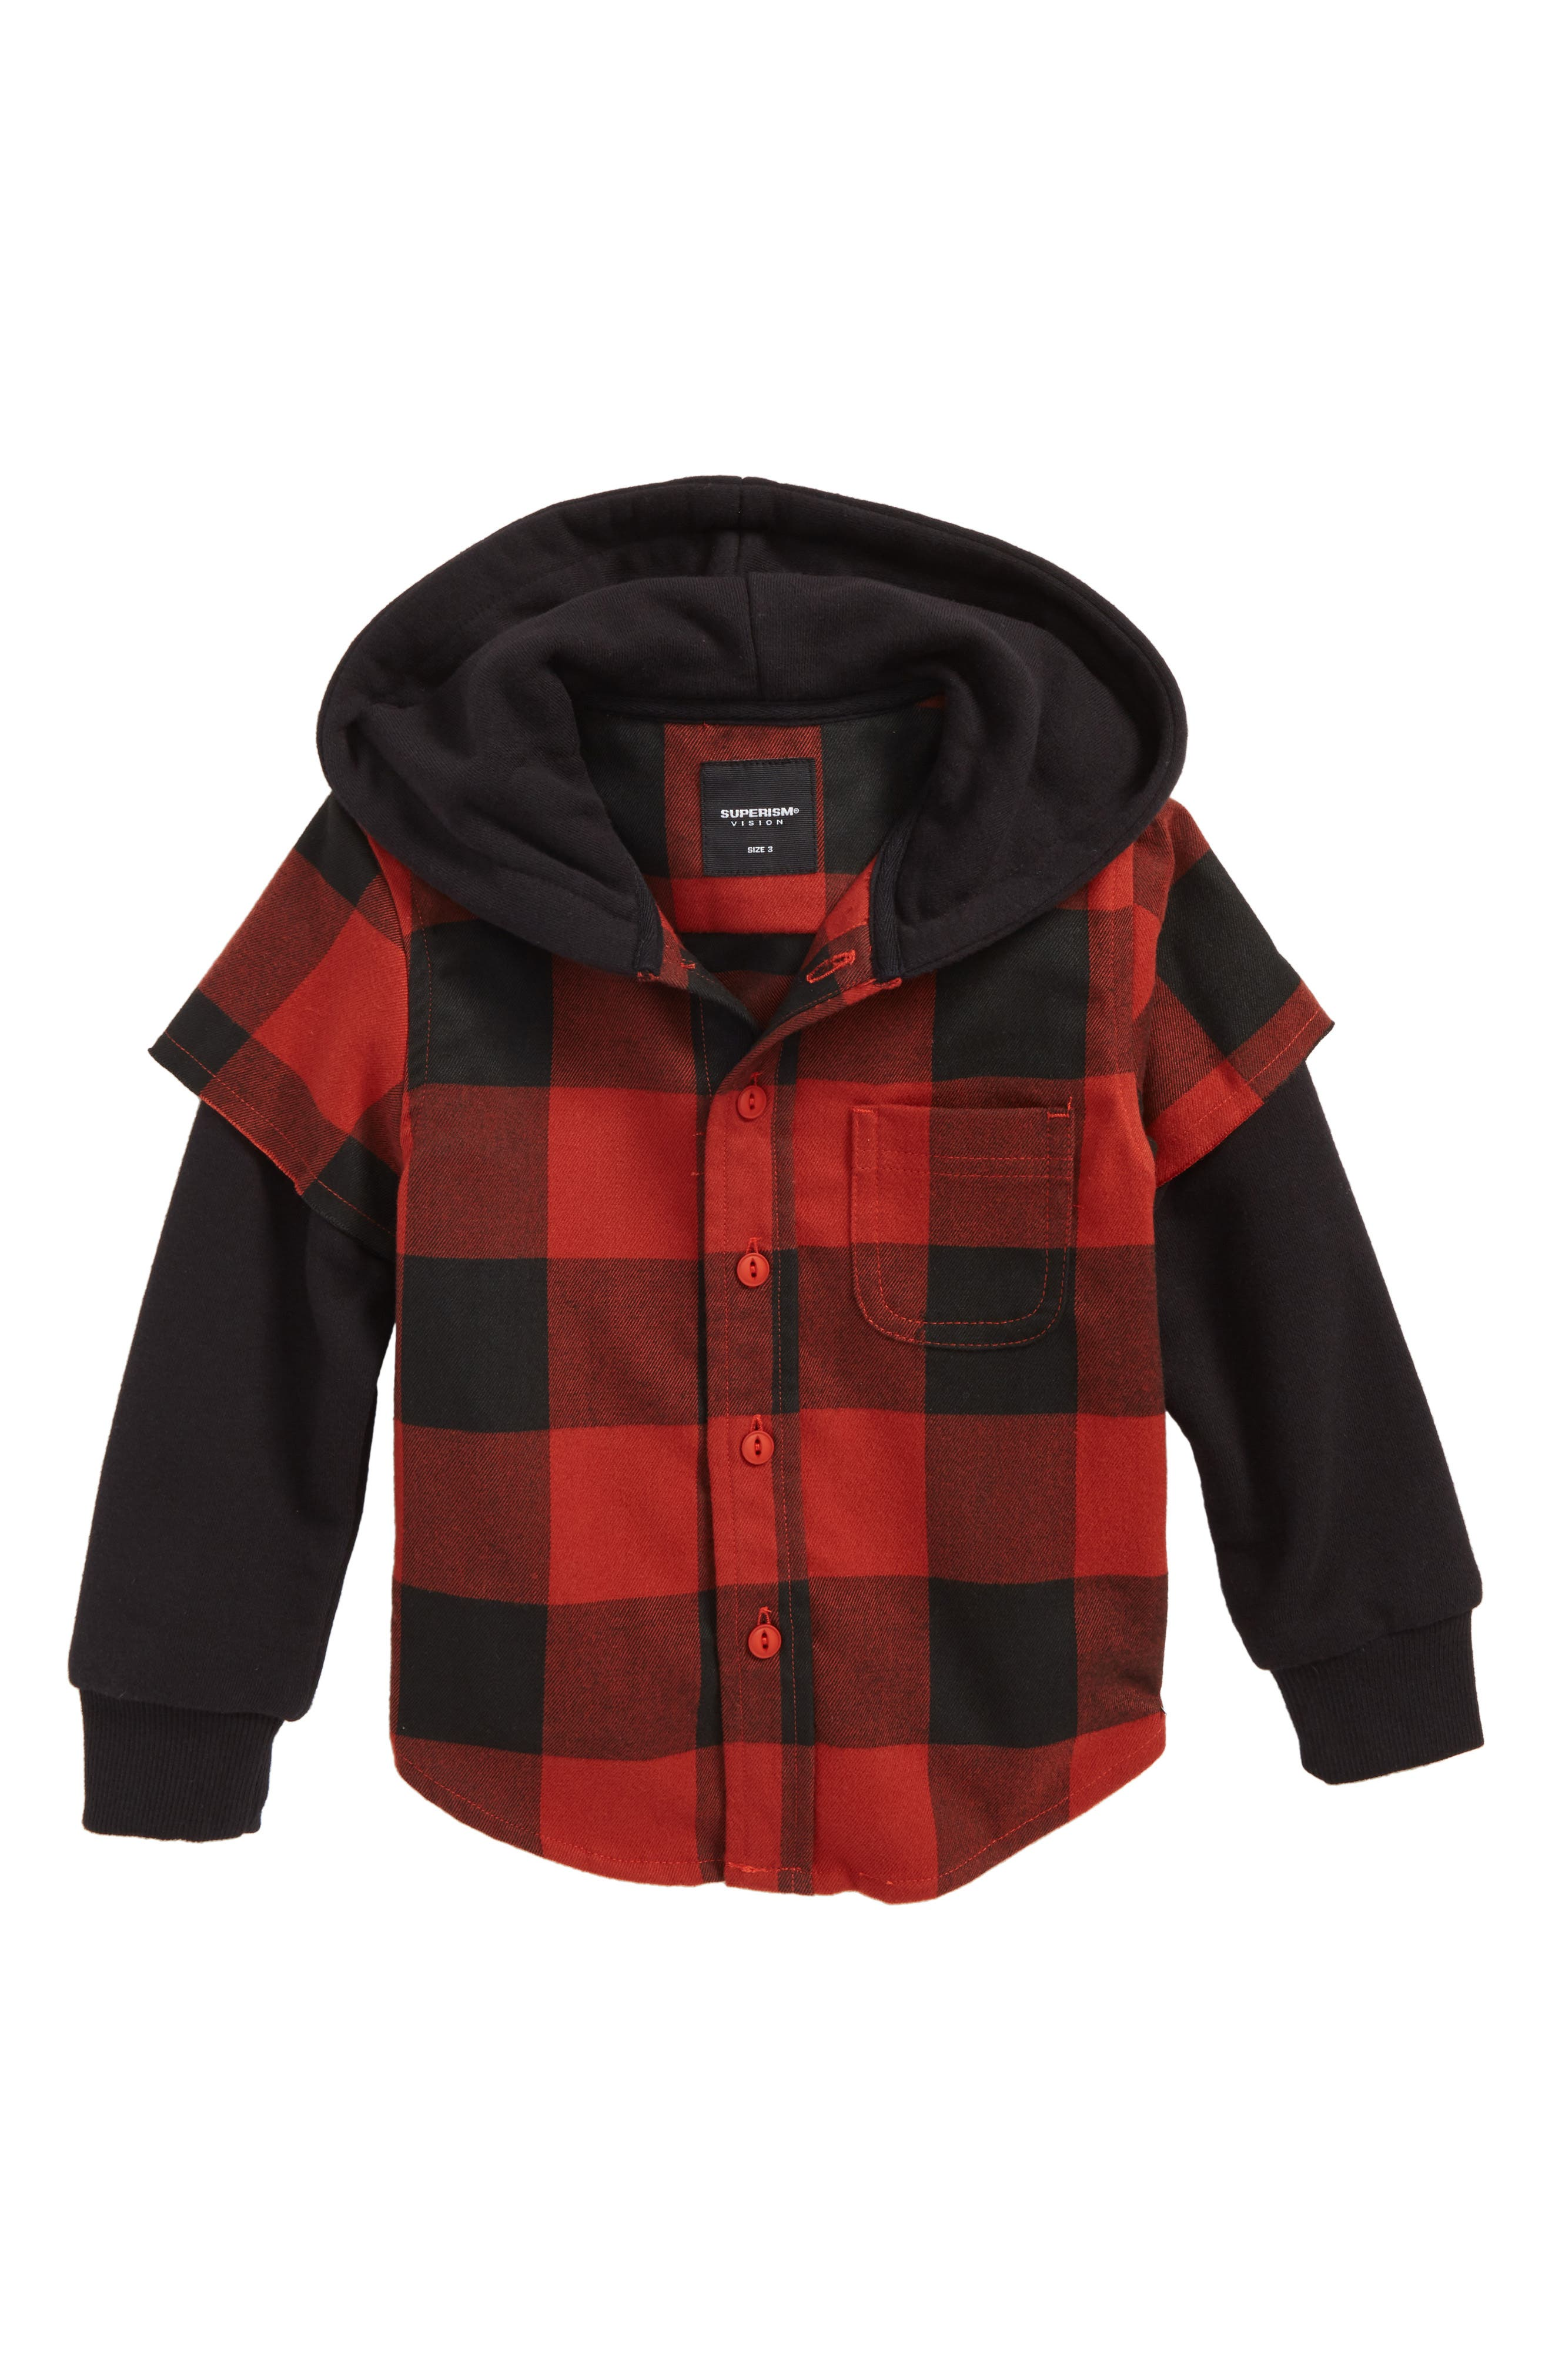 Alternate Image 1 Selected - Superism Rylan Check Hooded Shirt (Toddler Boys & Little Boys)